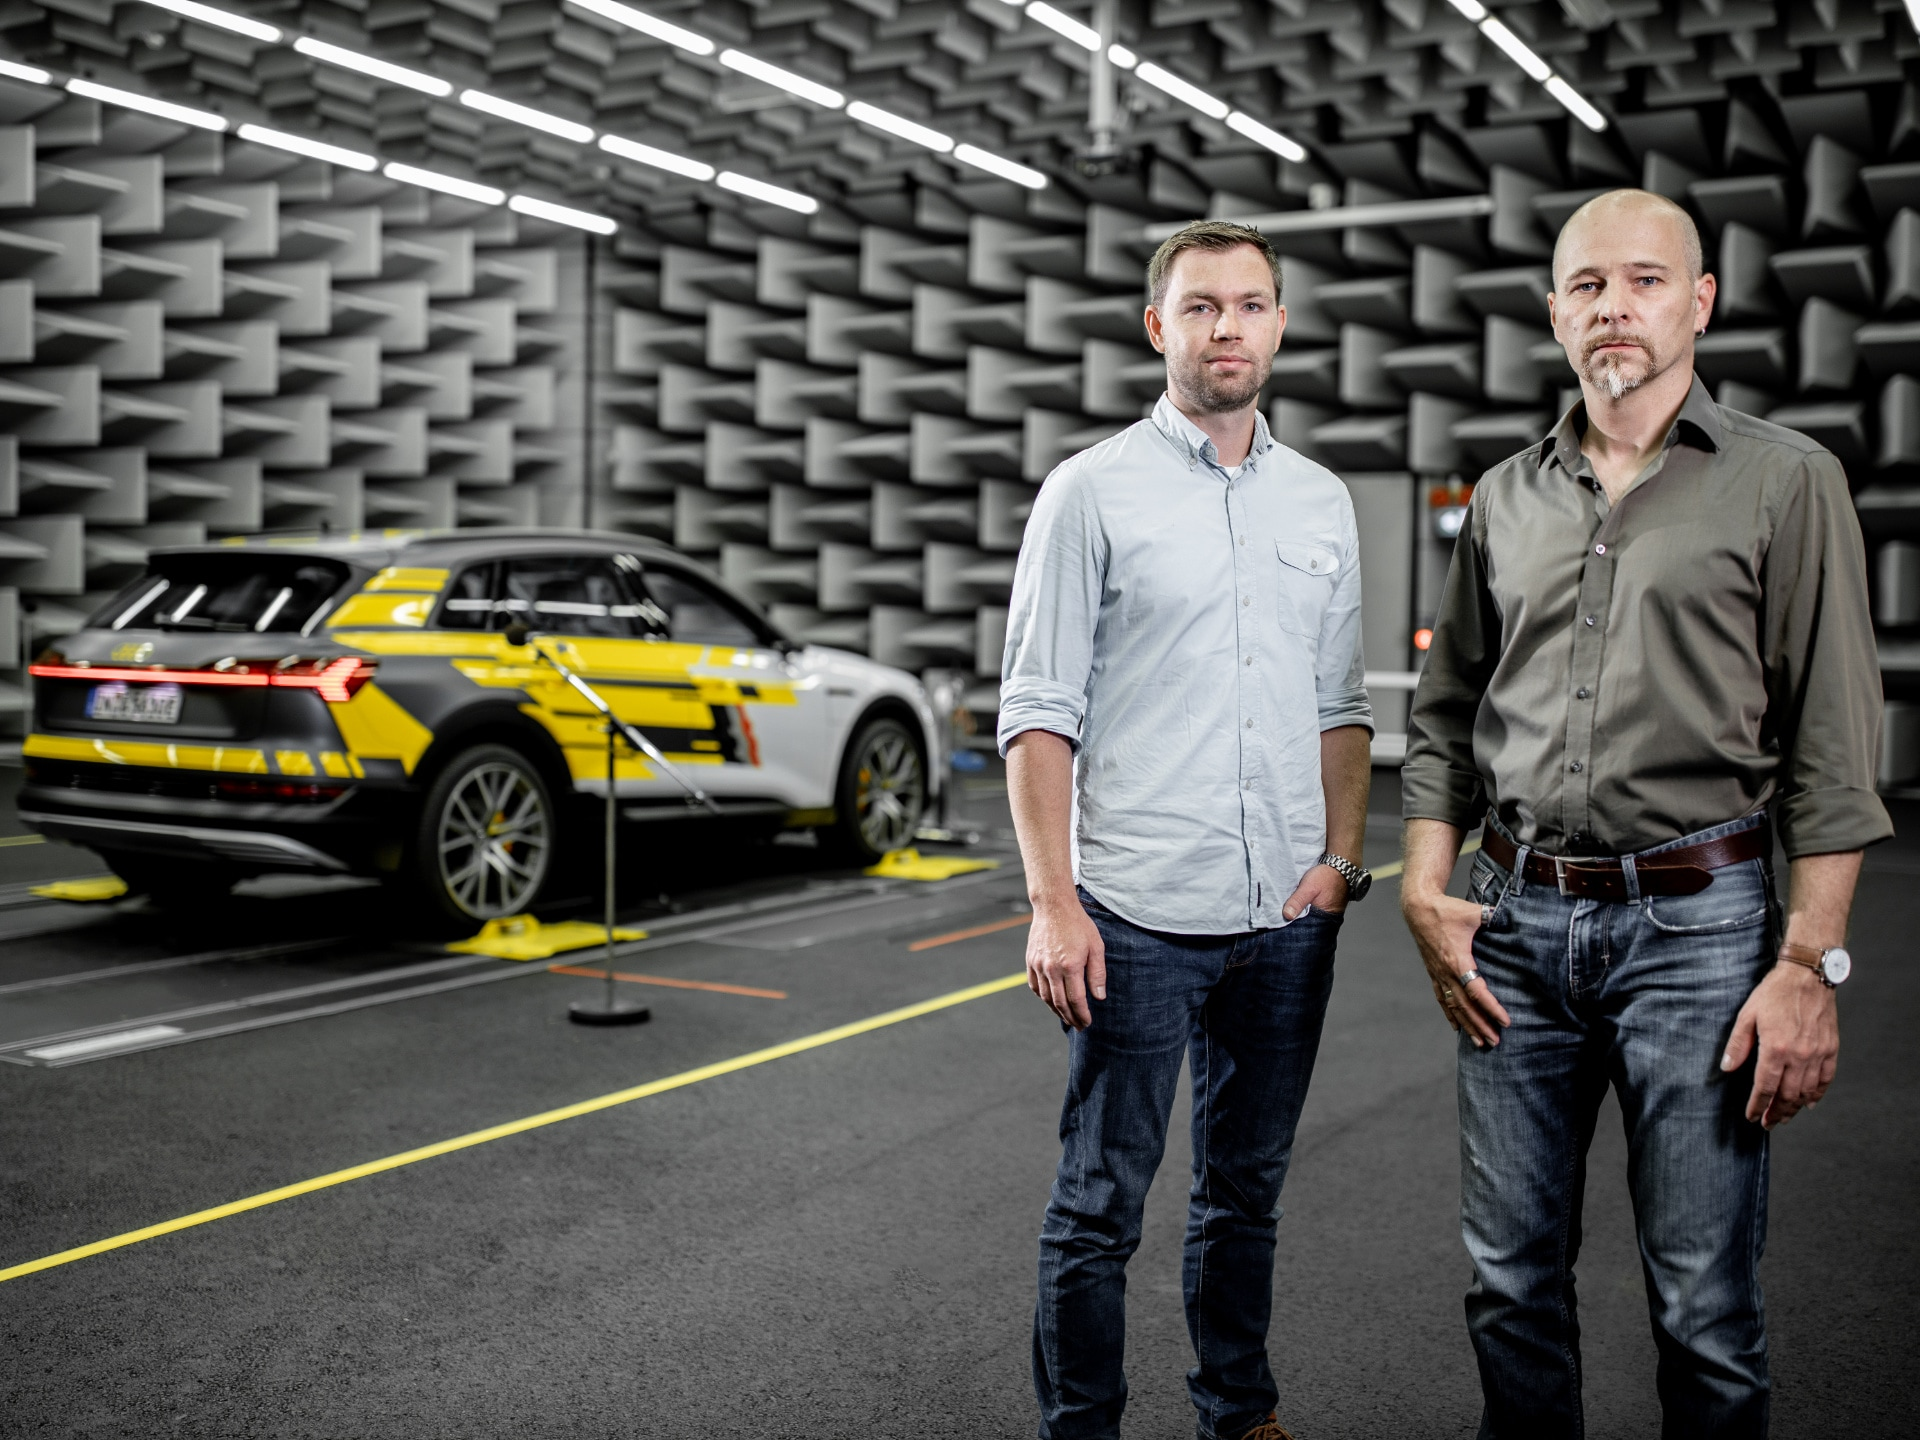 Stephan Gsell and Rudi Halbmeir in the Audi sound lab with the Audi e-tron.